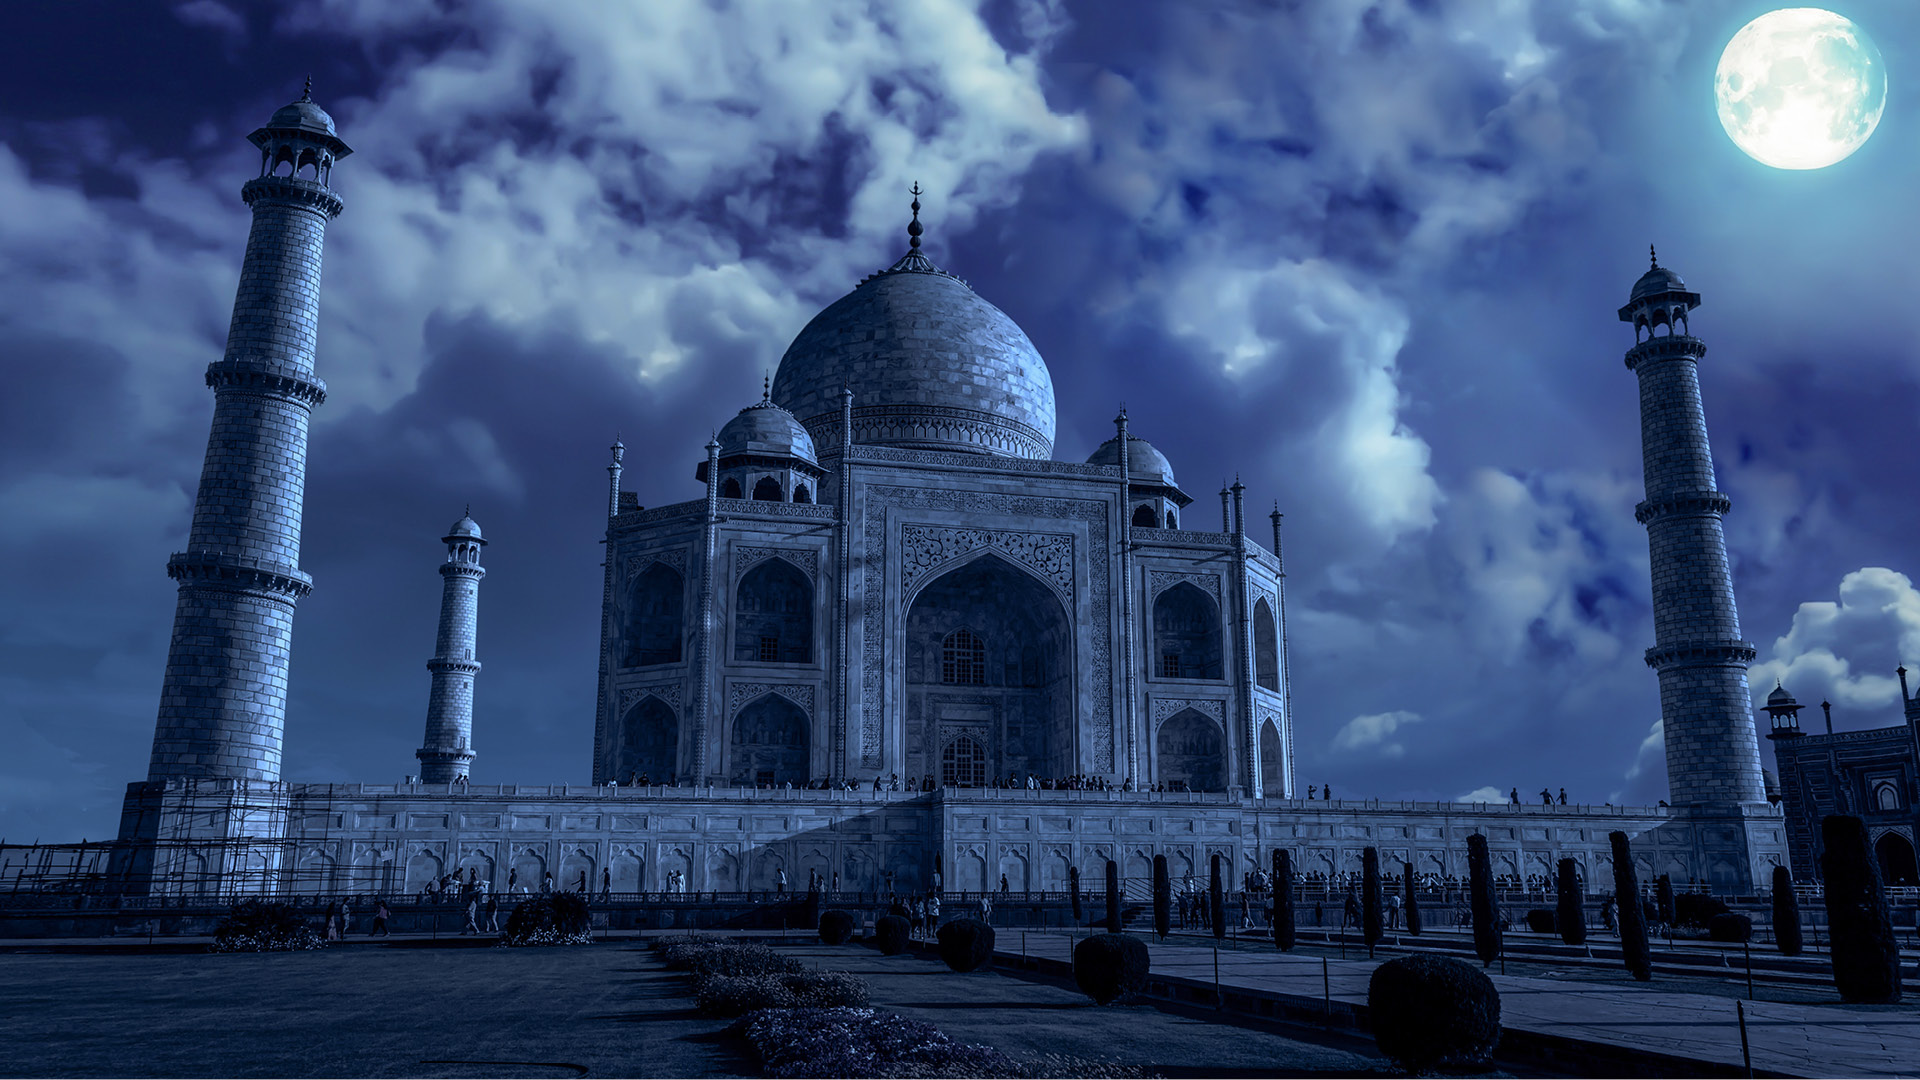 taj mahal at fullmoon night